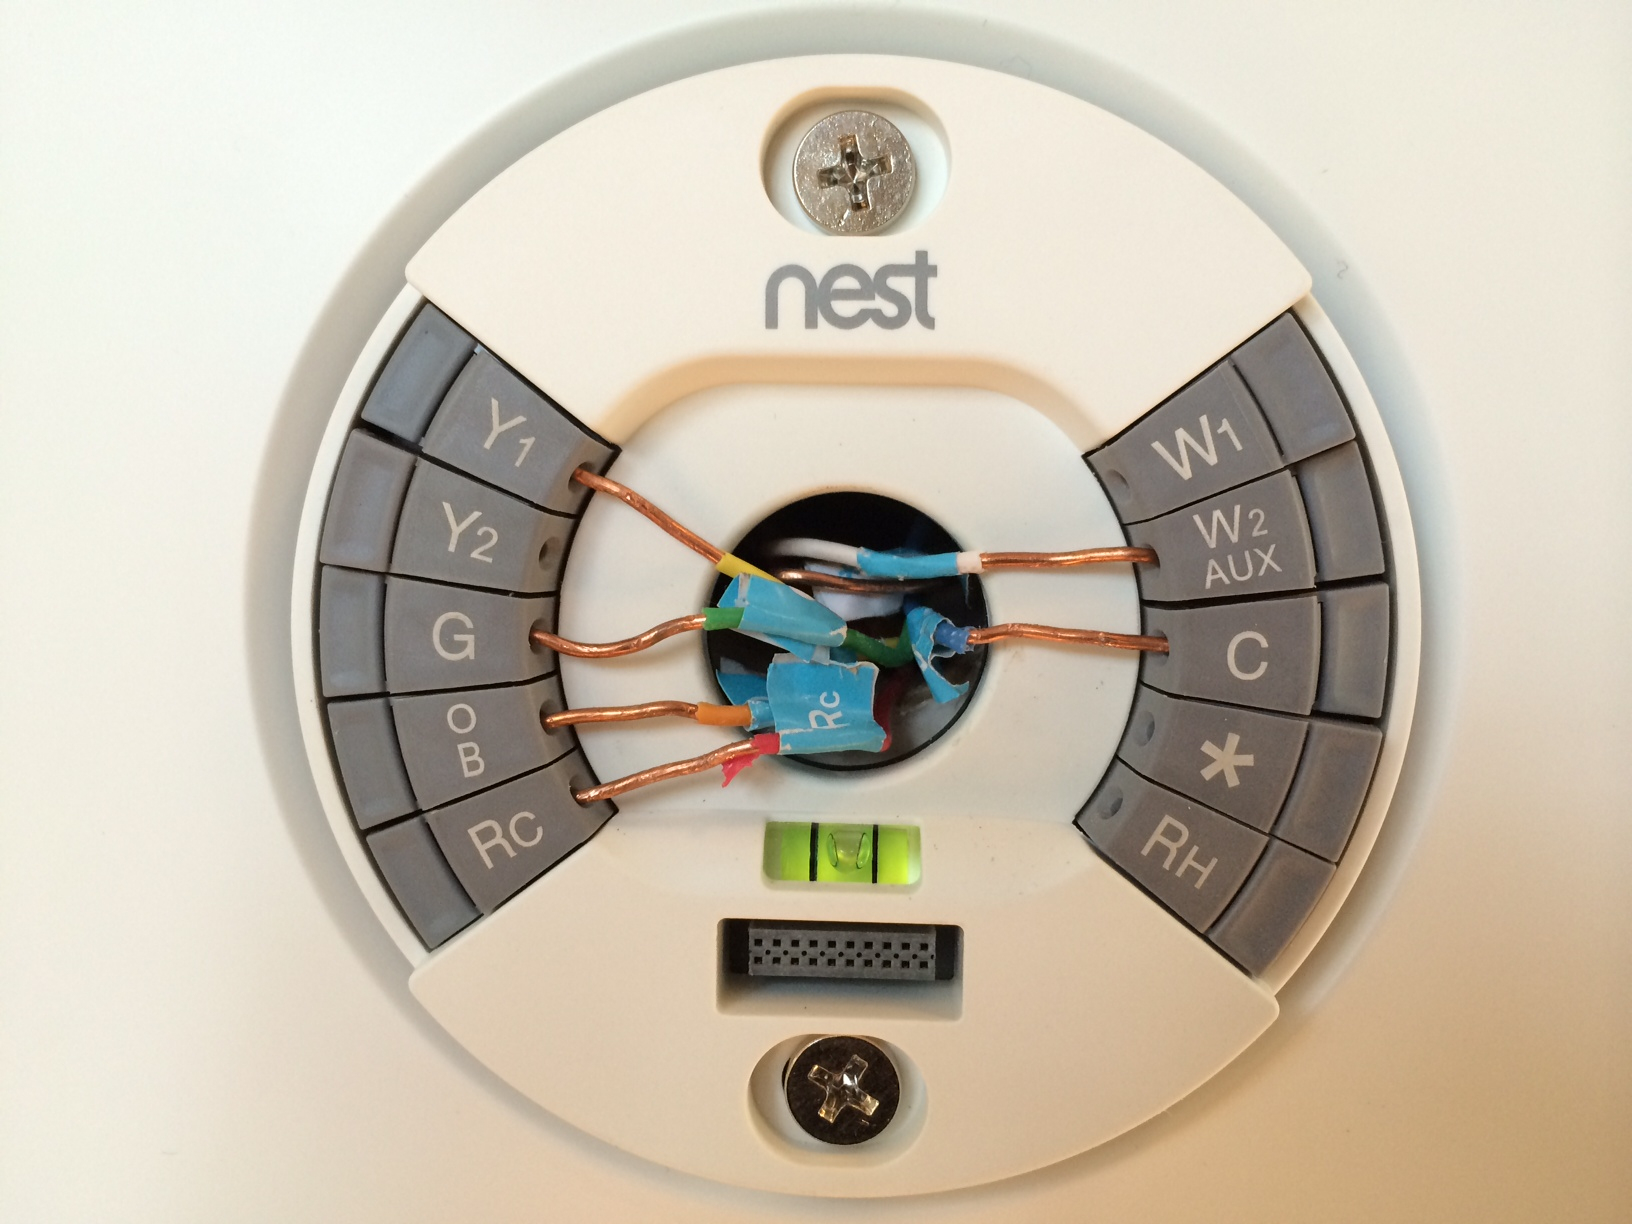 Nest Thermostat Wiring Diagram For Furnace And Air Conditioning - Nest Thermostat Wiring Diagram Heat Pump